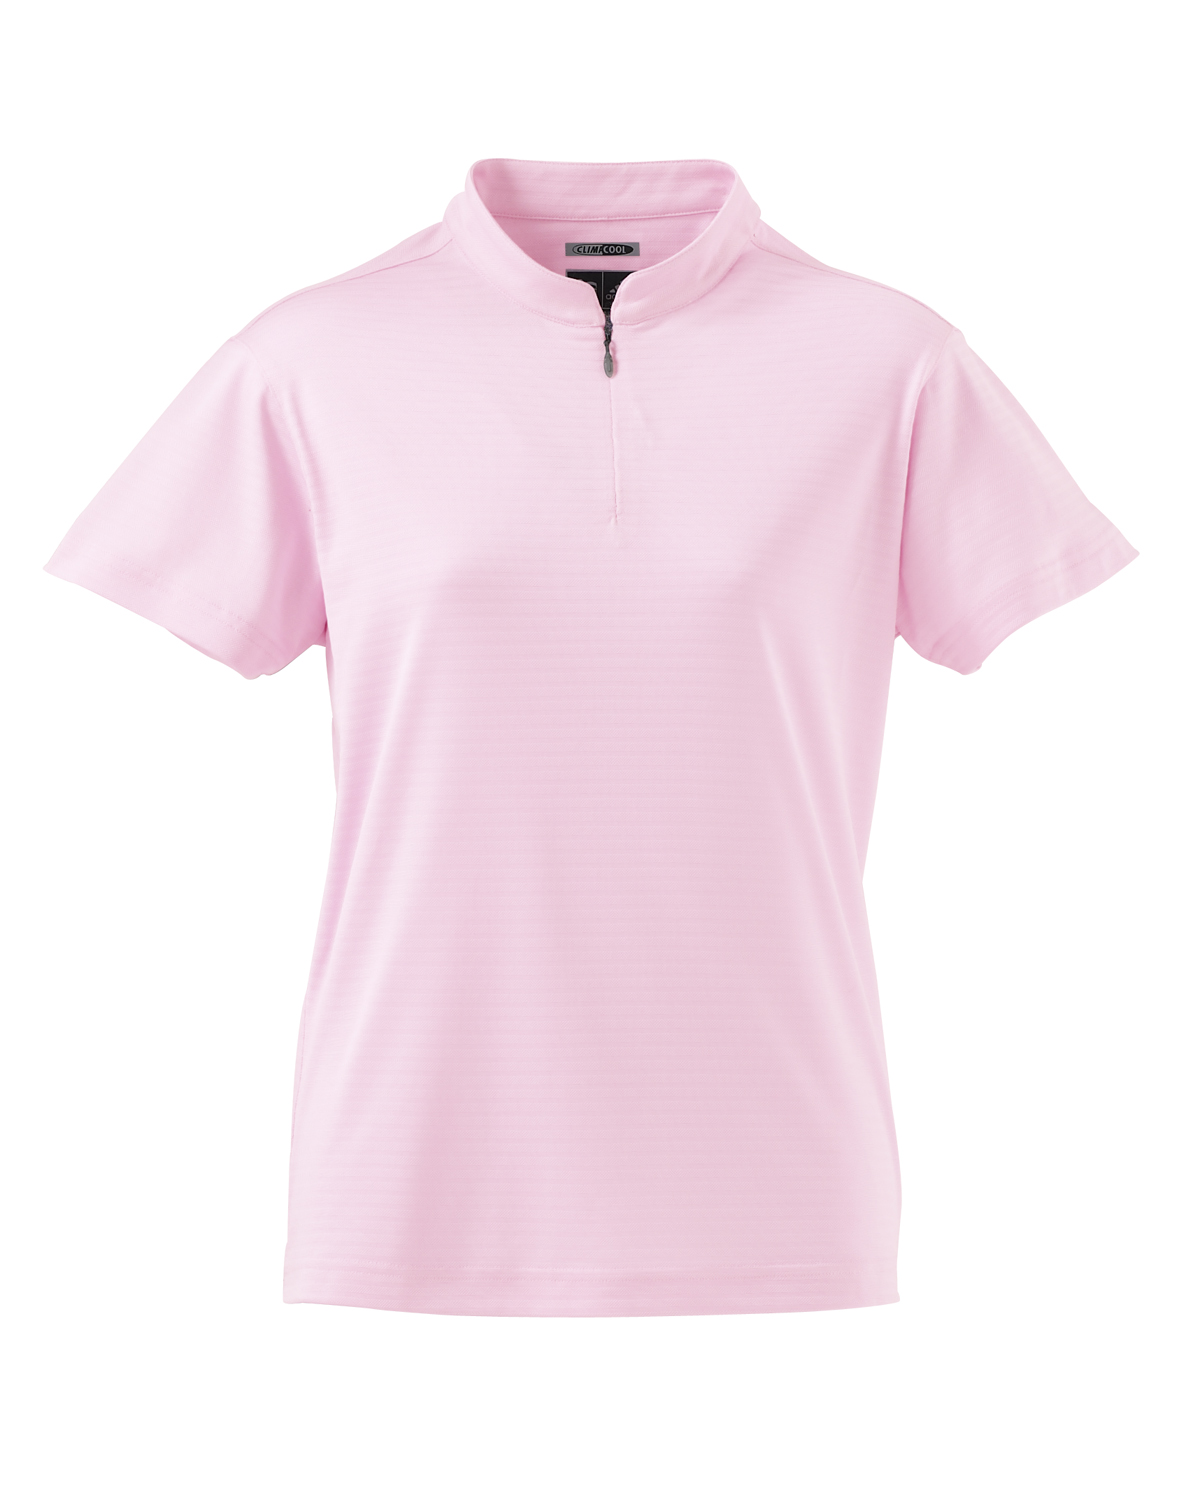 Ladies golf apparel sale cardigan with buttons for Golf t shirts for sale